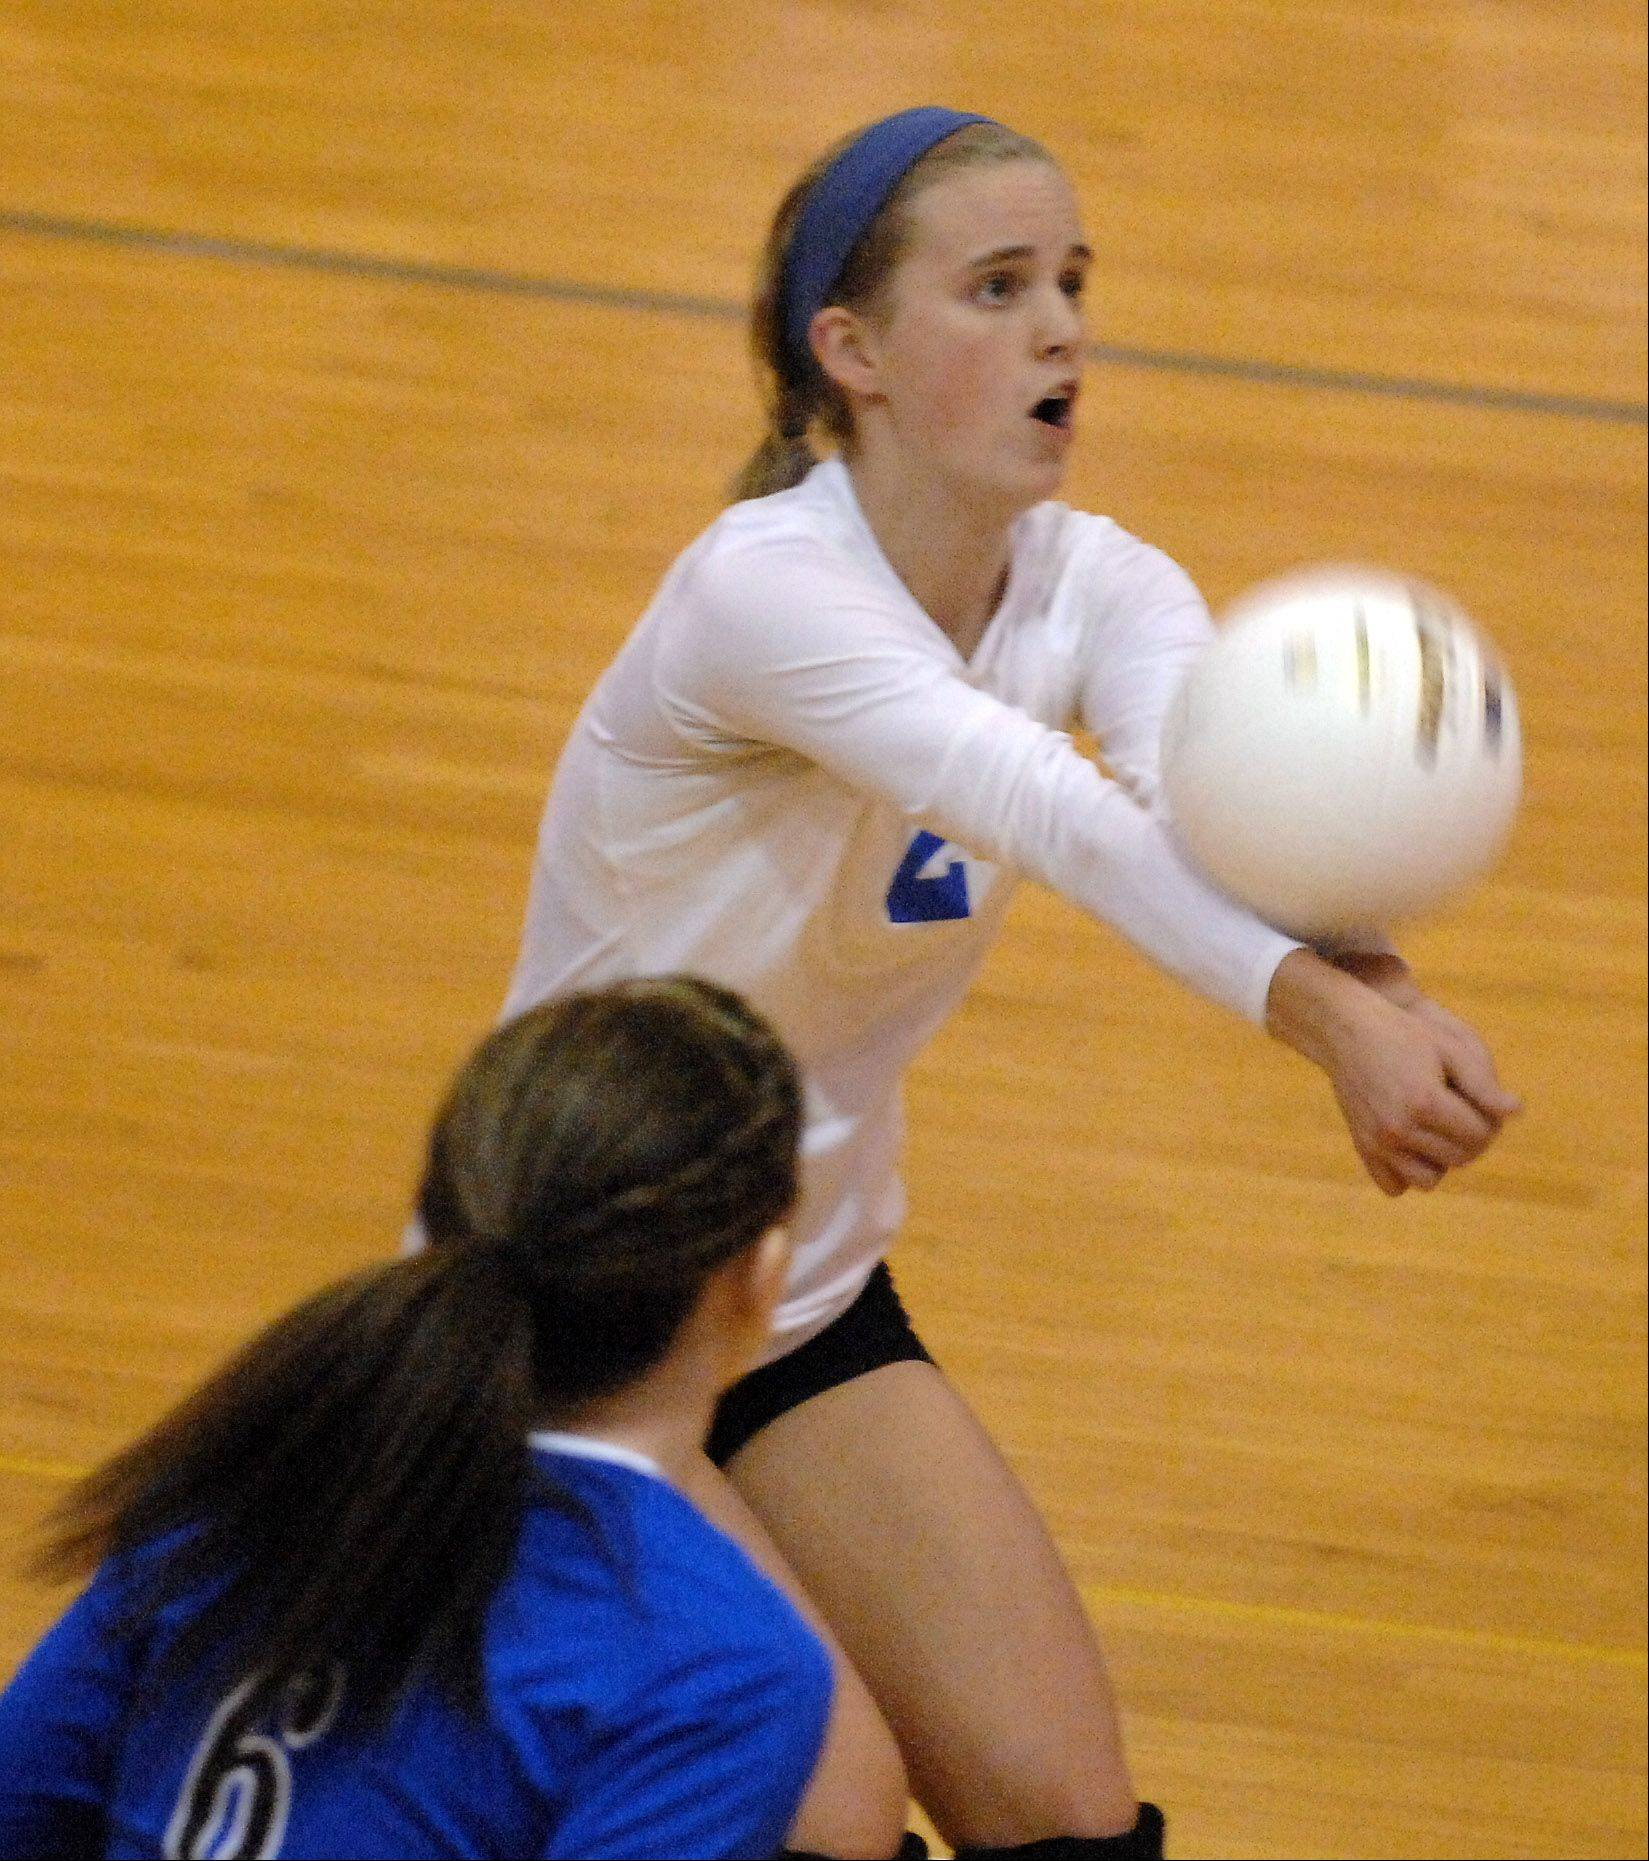 Geneva's Kelly Dalheim returns serve during Tuesday's sectional semifinals at Larkin High School in Elgin.